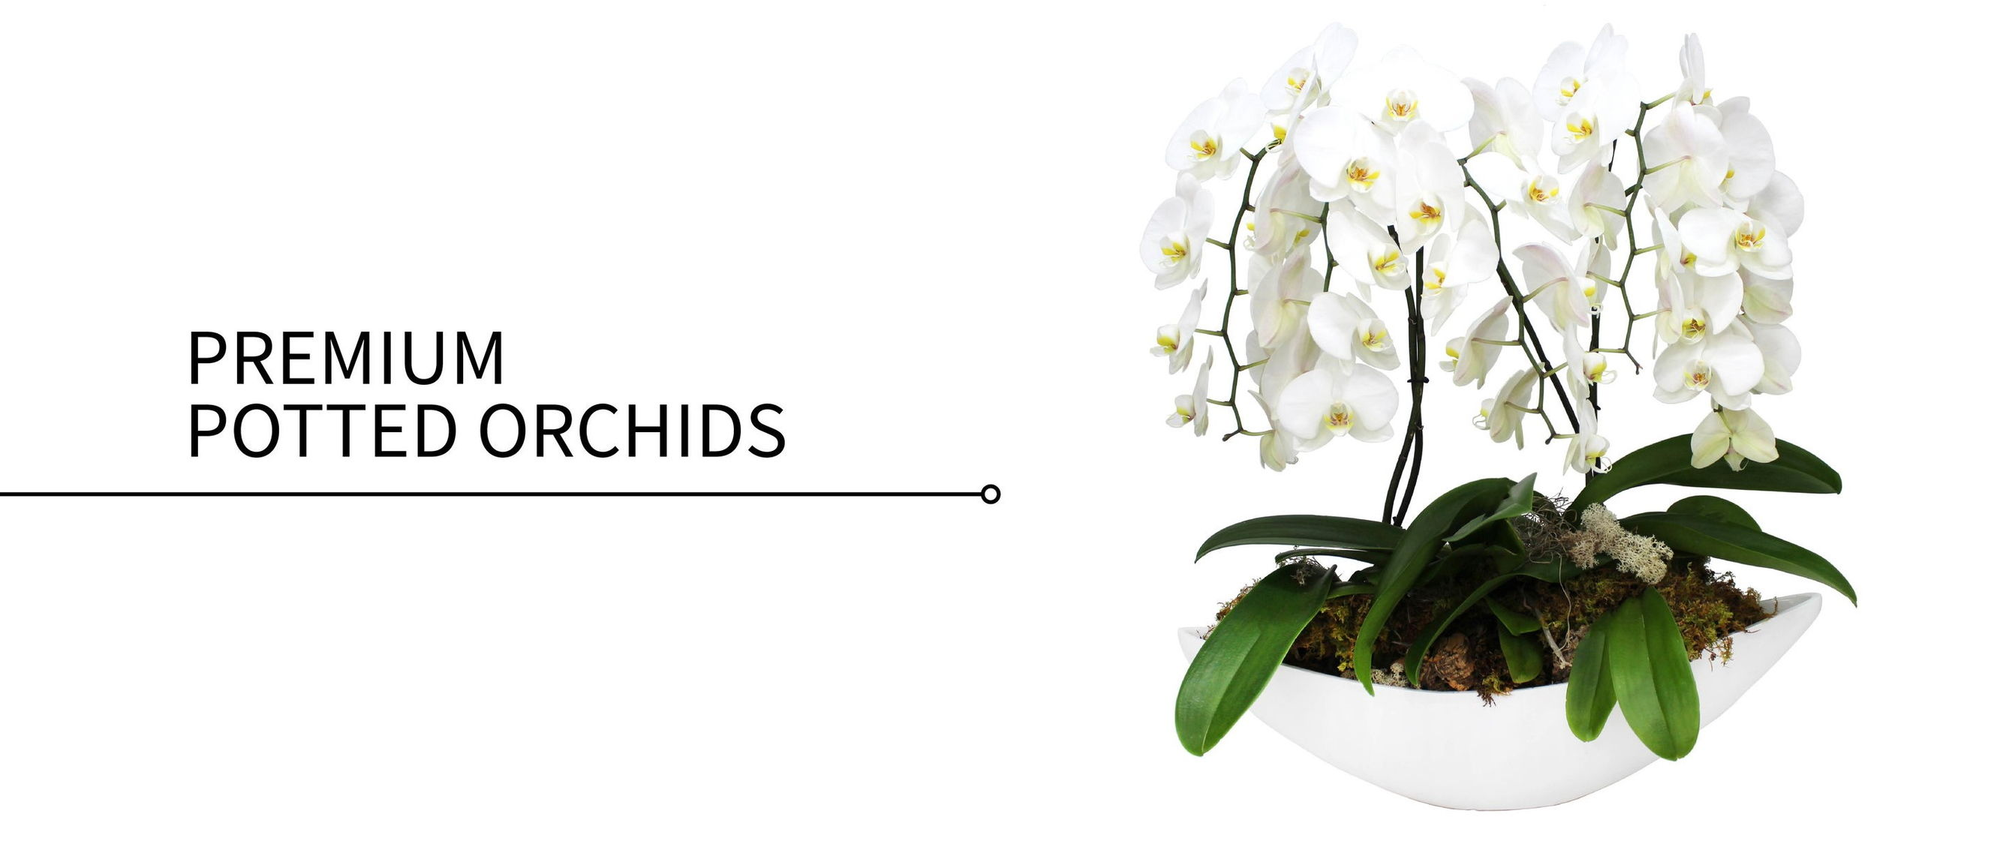 Premium Potted Orchids